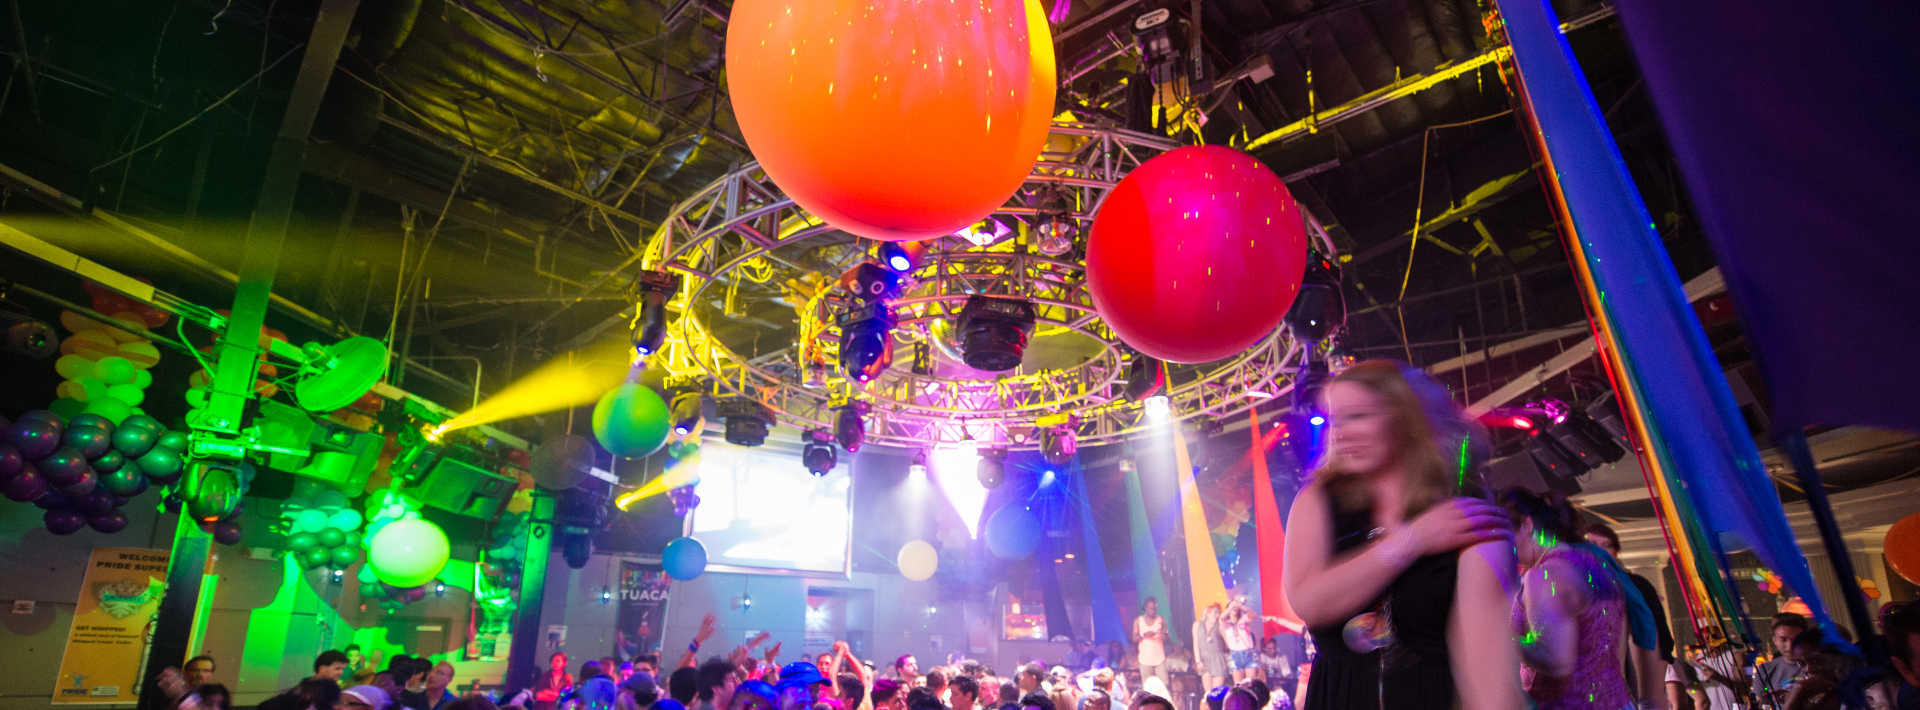 Houston Events, Shows & Concerts | LGBT Friendly Events